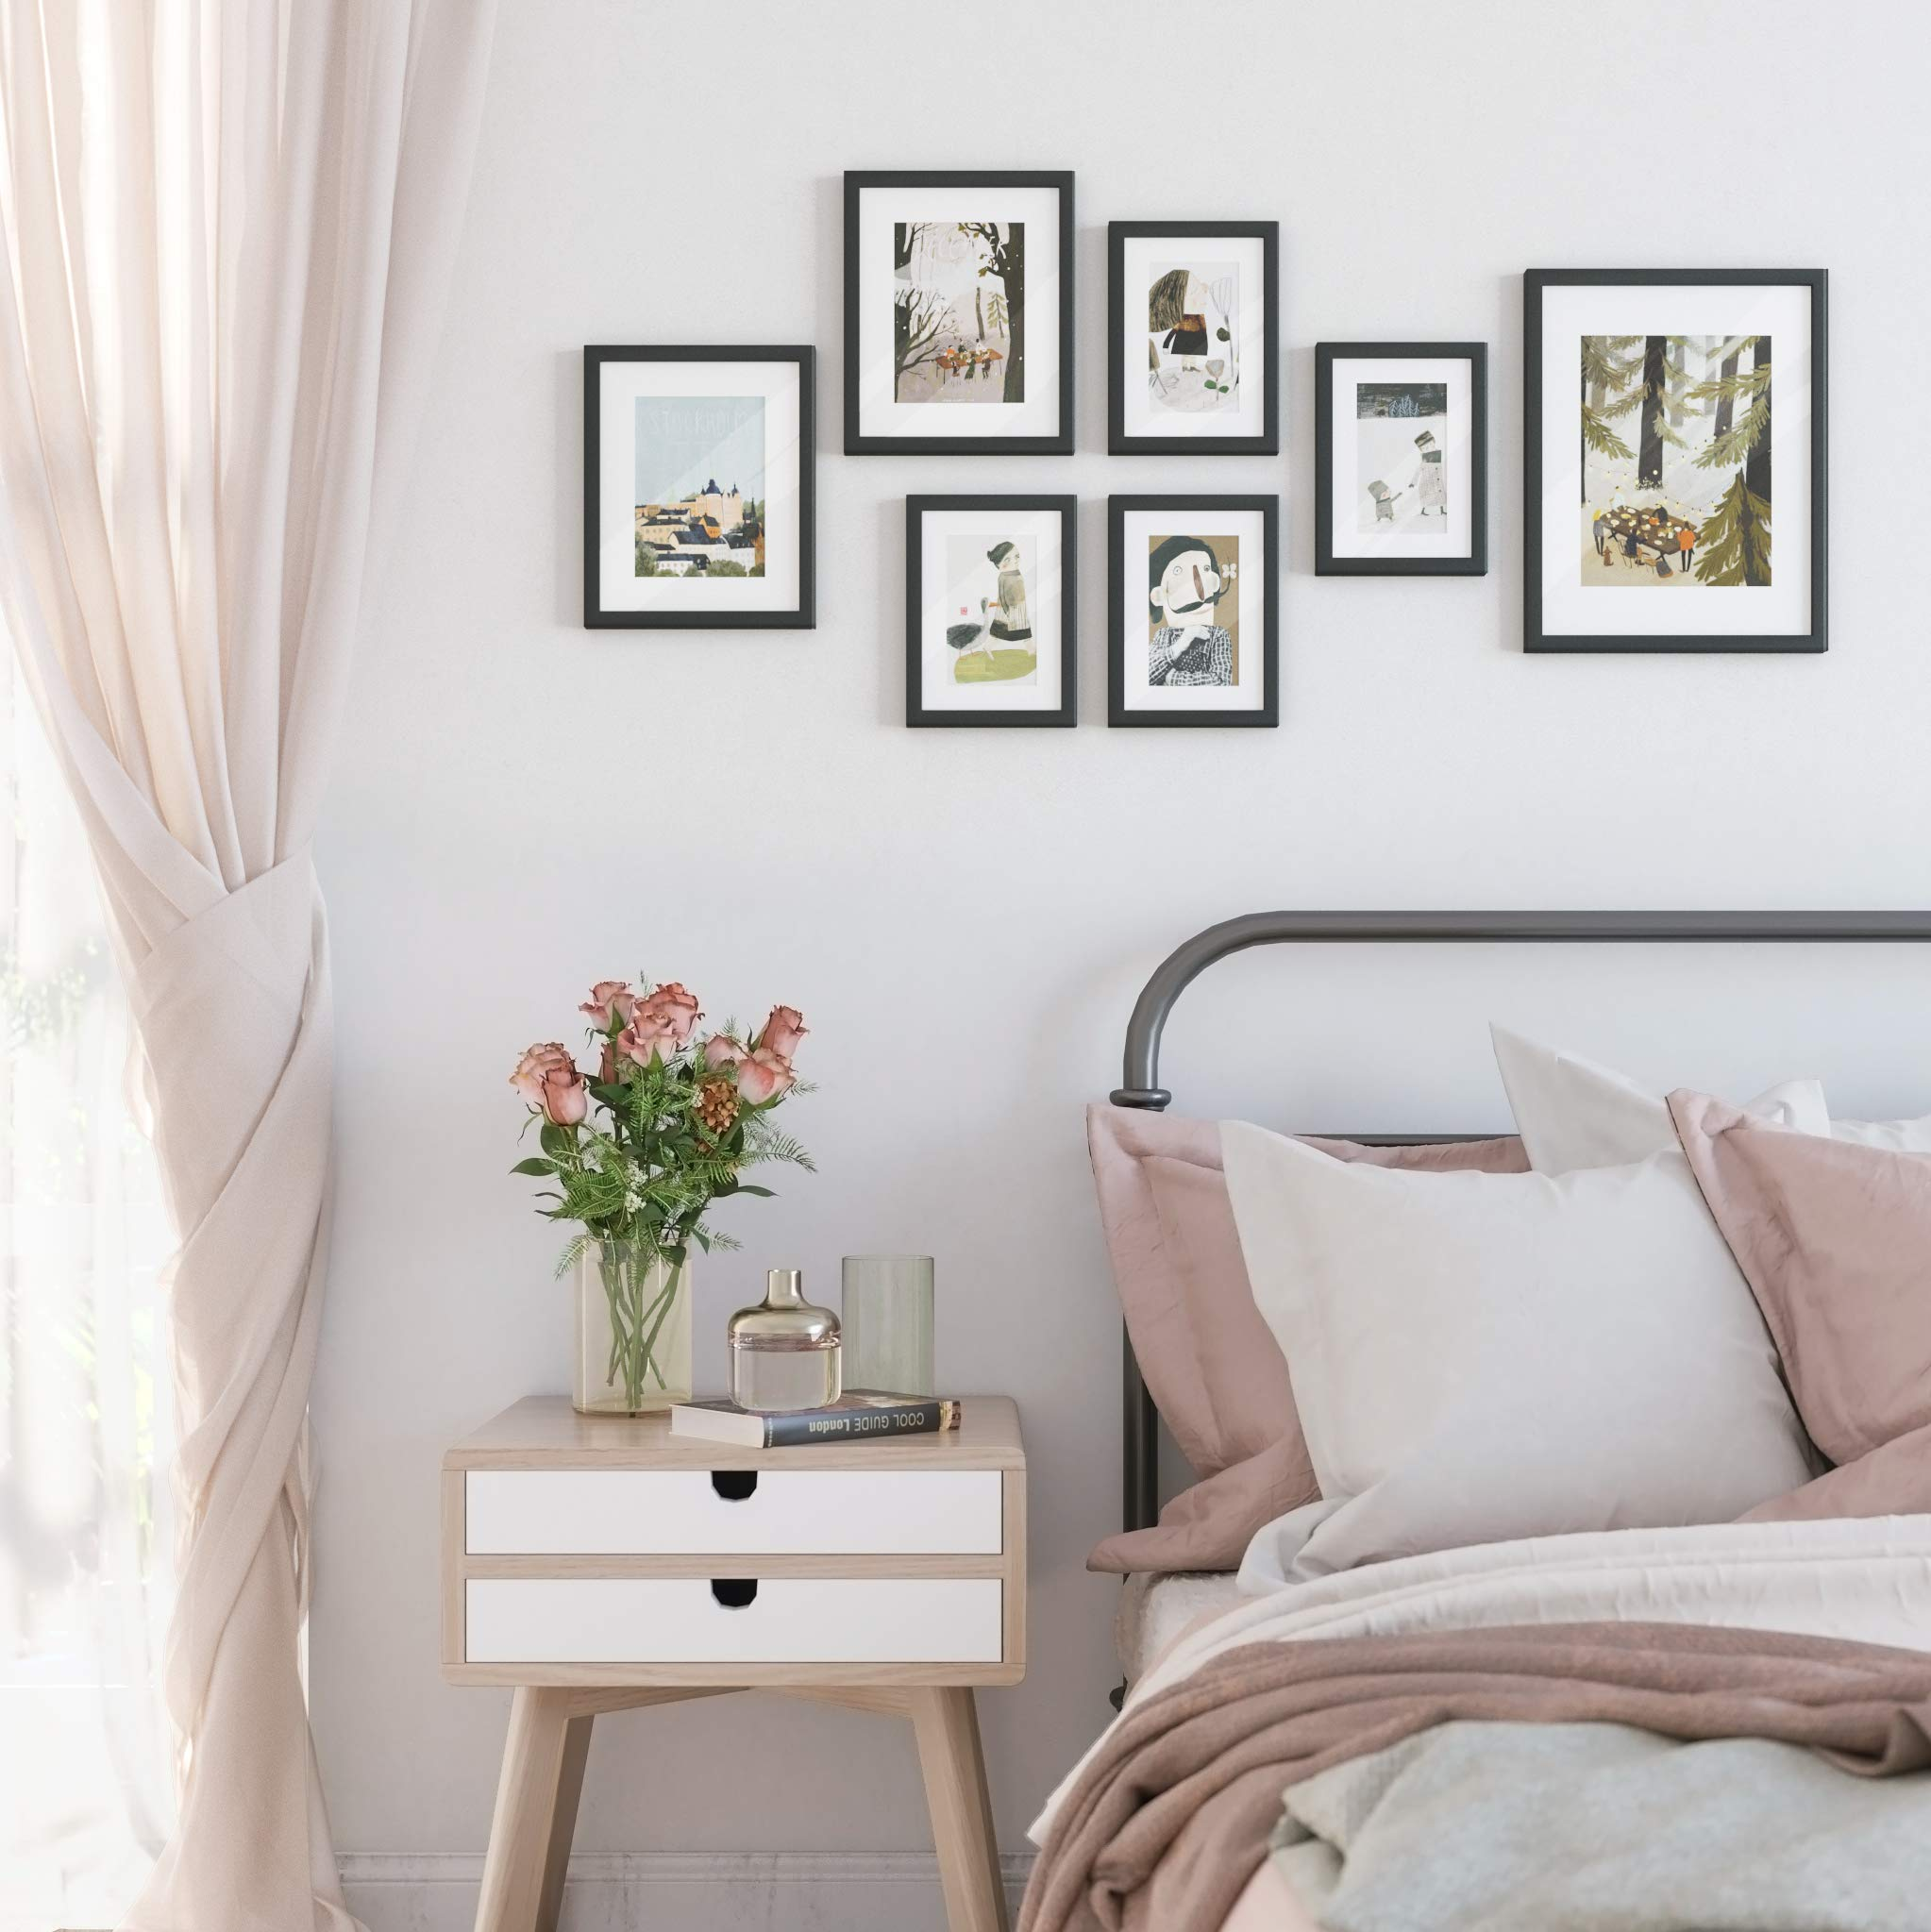 SONGMICS Picture Frames Set of 7 Pieces, One 11 x 14 Inches, Two 8 x 10 Inches, Four 6 x 8 Inches, with White Mat Real Glass, for Multiple Photos, Black Wood Grain URPF37BK by SONGMICS (Image #8)